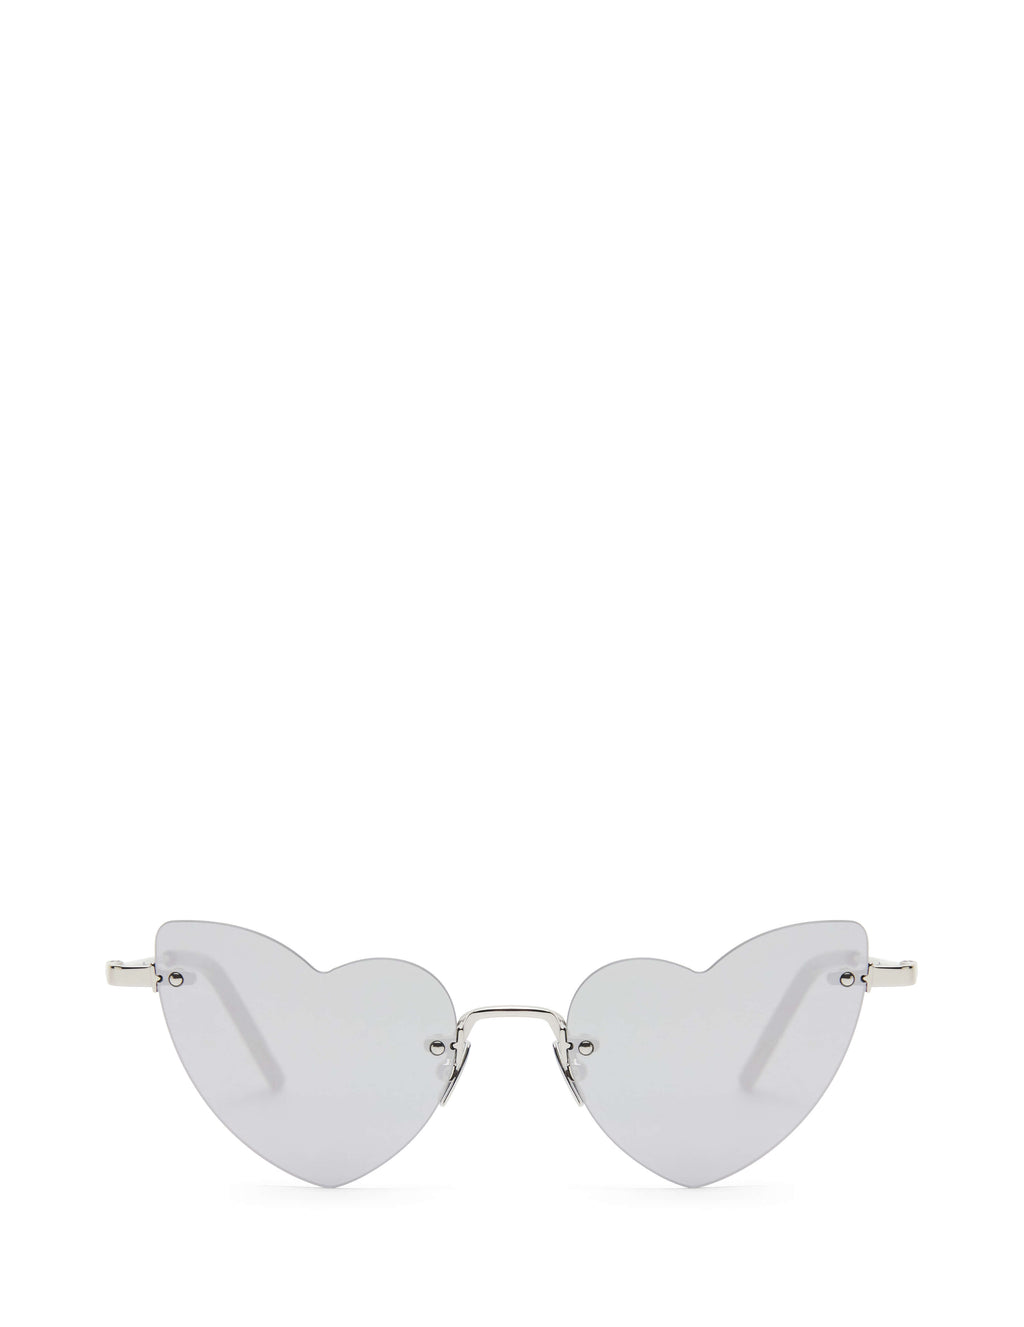 Saint Laurent Eyewear Women's Giulio Fashion Silver New Wave LouLou Sunglasses SL254LOULOU002